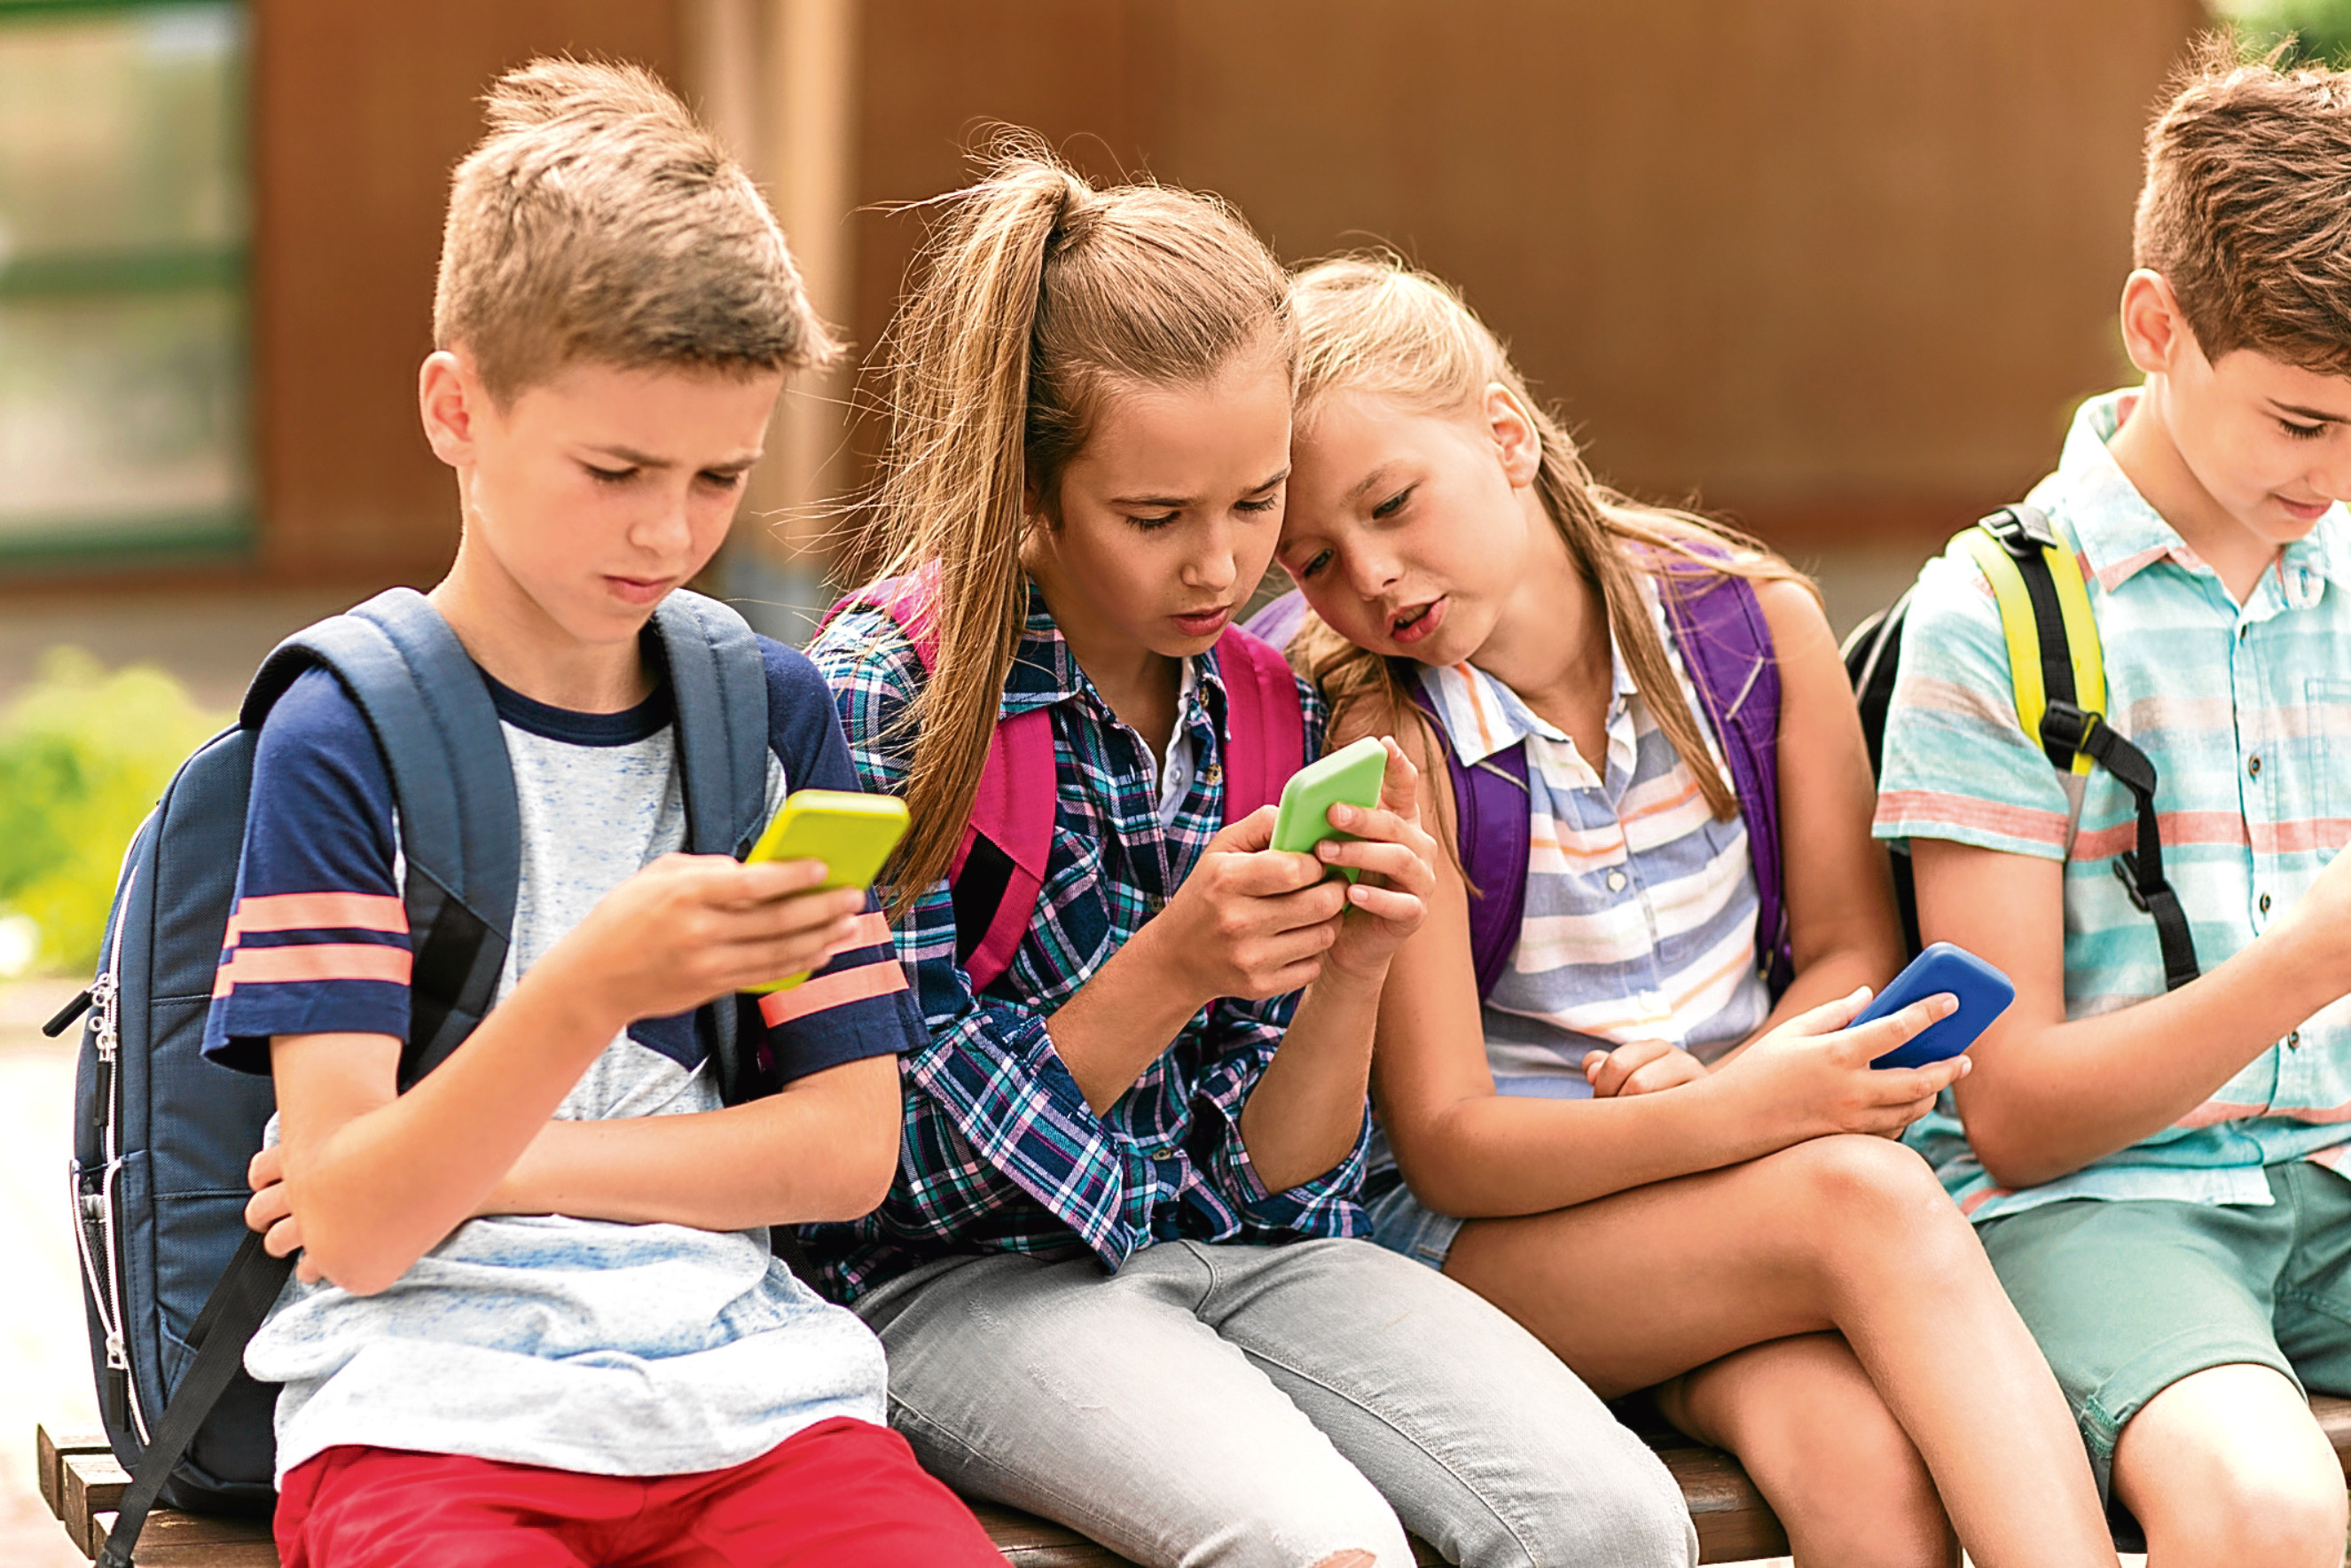 Donald Macleod is in favour of a phone ban for kids (iStock)